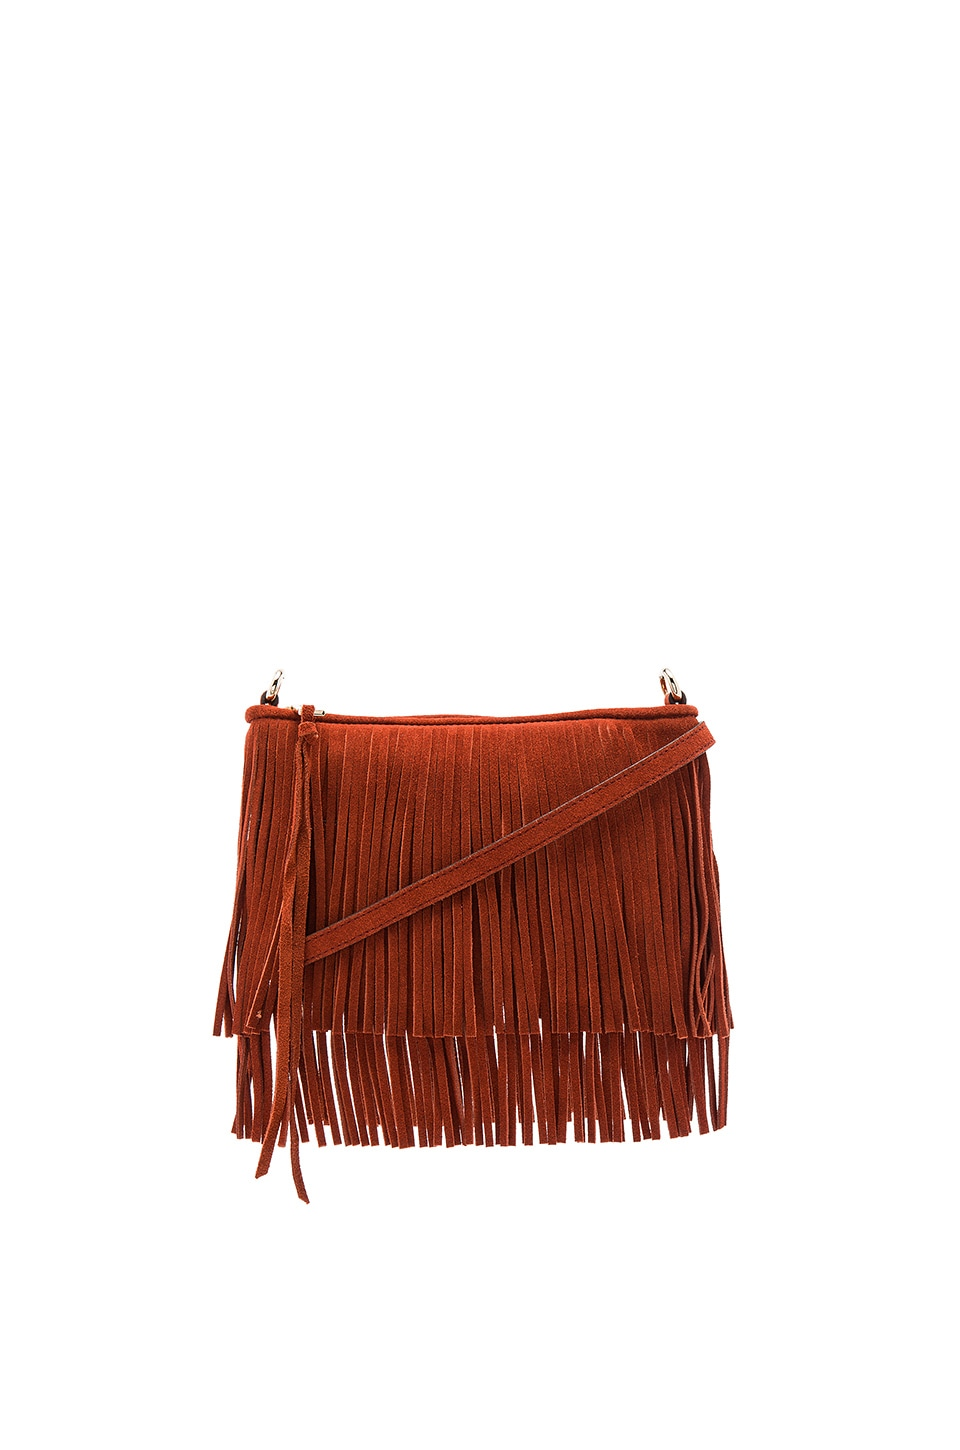 Rebecca Minkoff Finn Crossbody Bag in Baked Clay